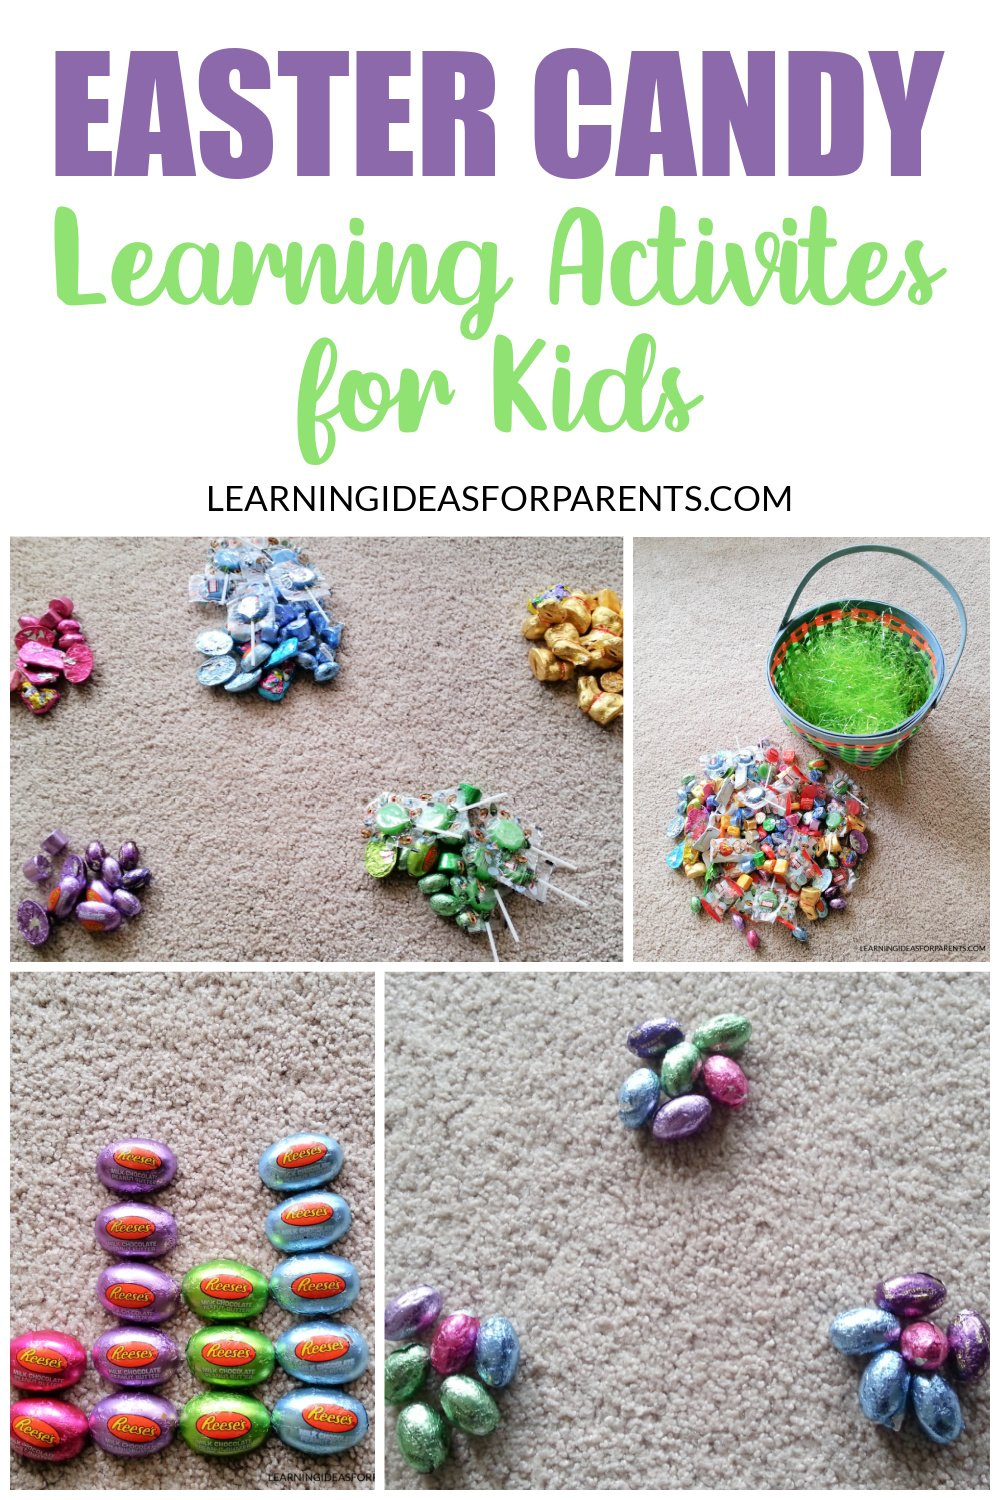 Learning activities with Easter candy.